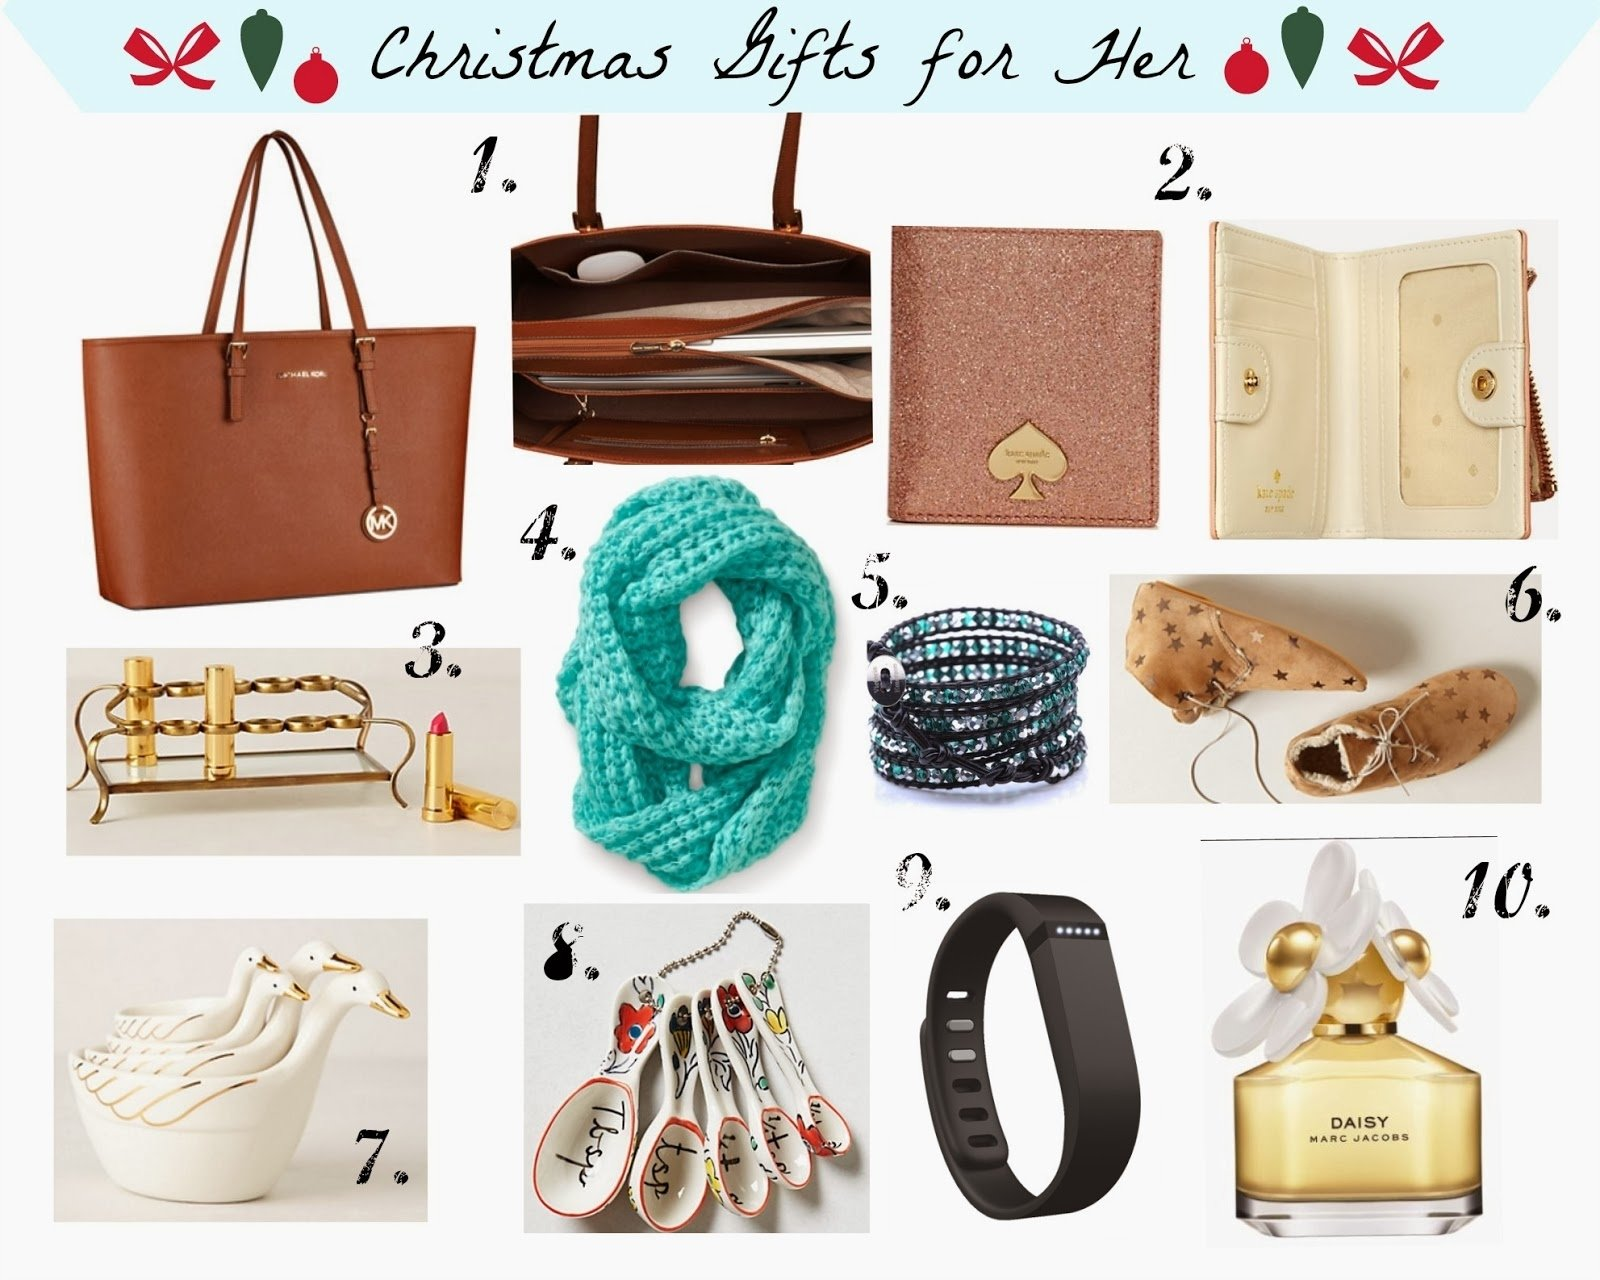 10 Lovely Couples Gift Ideas For Christmas christmas gifts for couples ideas orcouple christmas gift ideas 5 2020